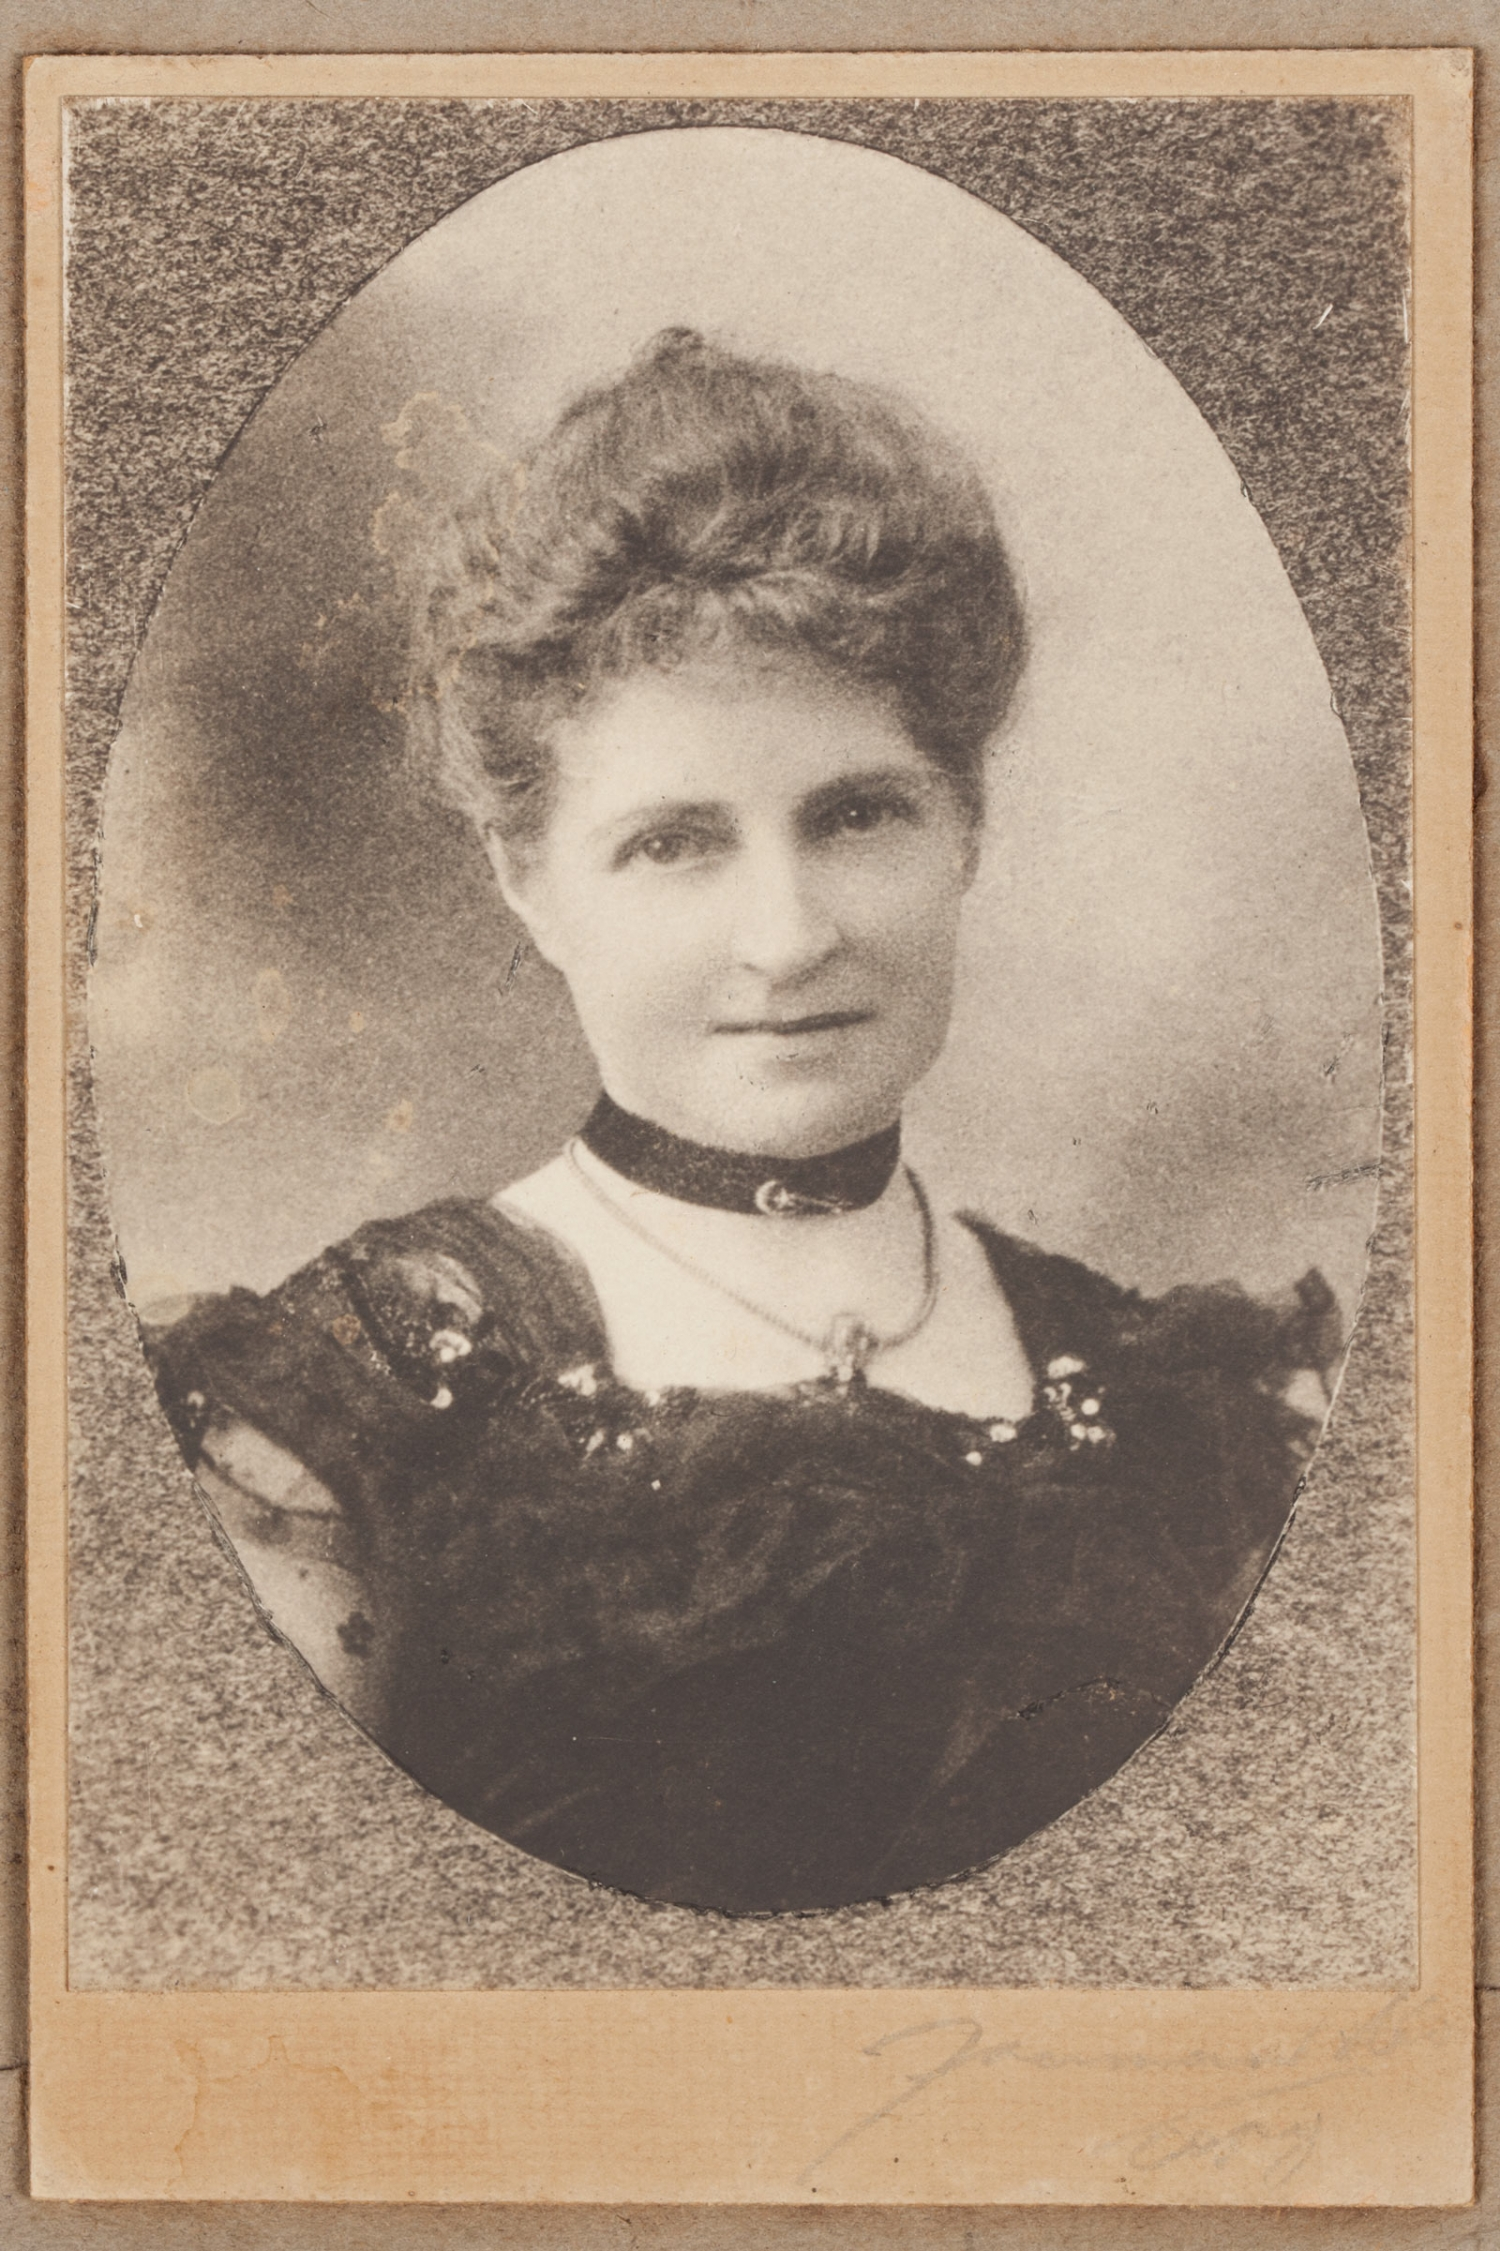 A head and shoulders portrait photograph of a woman, Bessie Rouse, wearing a dress with a square neckline and a black velvet at her neck decorated with a gold bar brooch